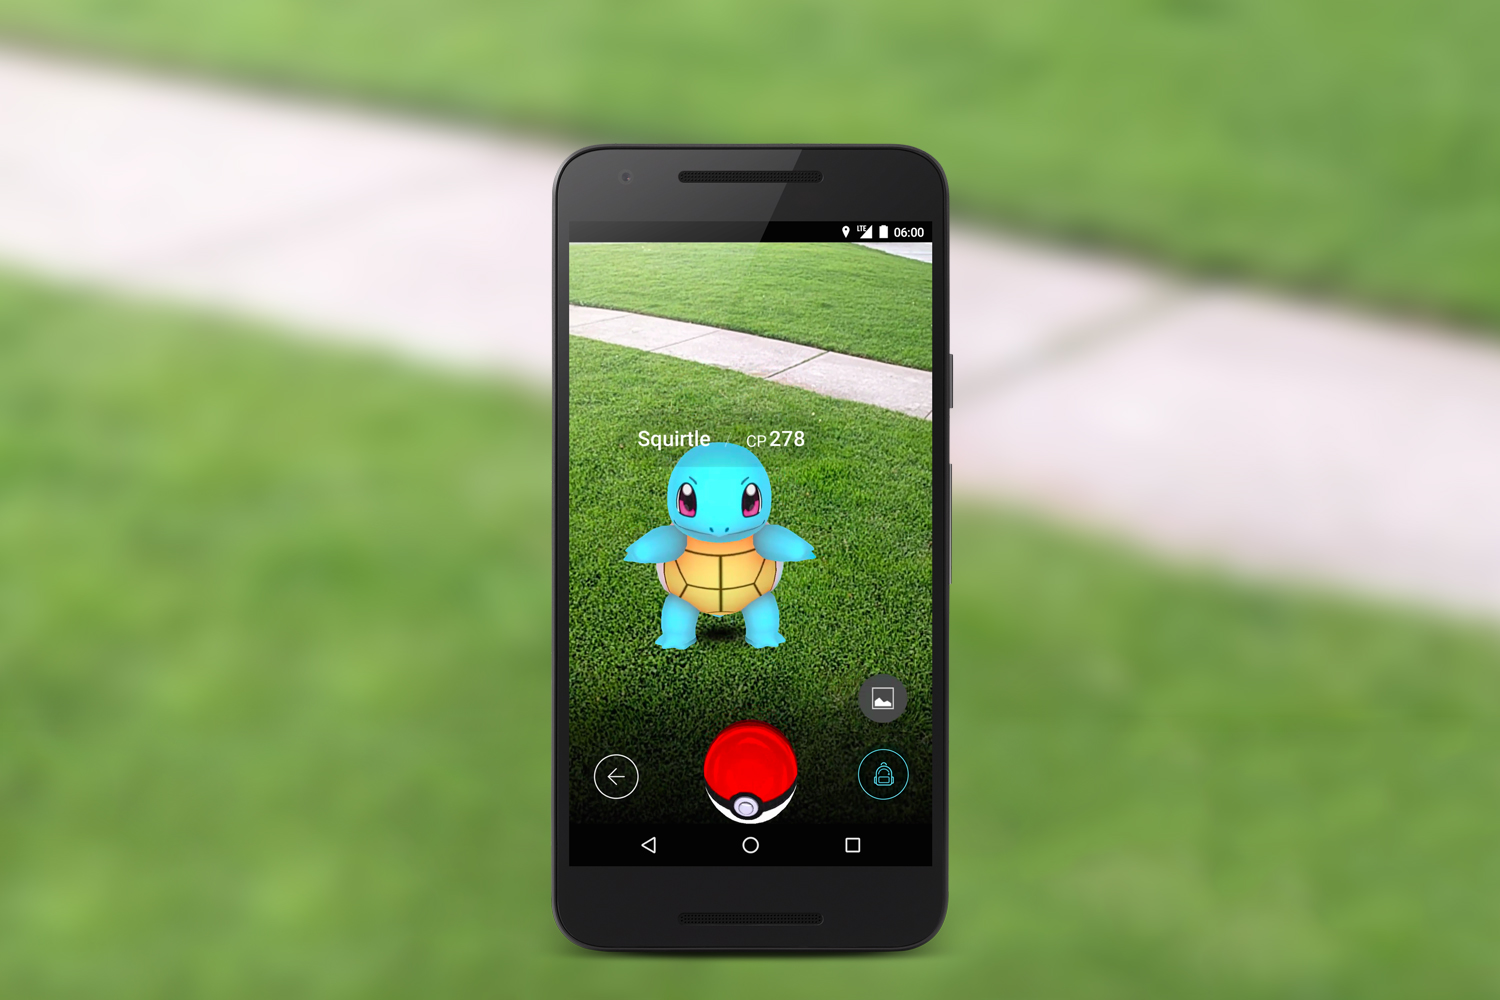 nintendo is fighting unofficial downloads of 'pokémon go' (good